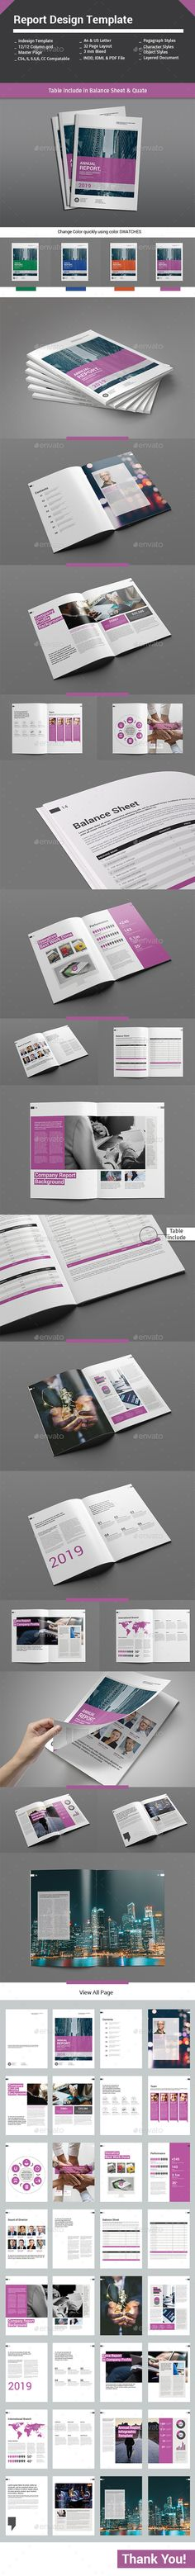 Cleaning Service Trifold Brochure Informational Brochure Templates